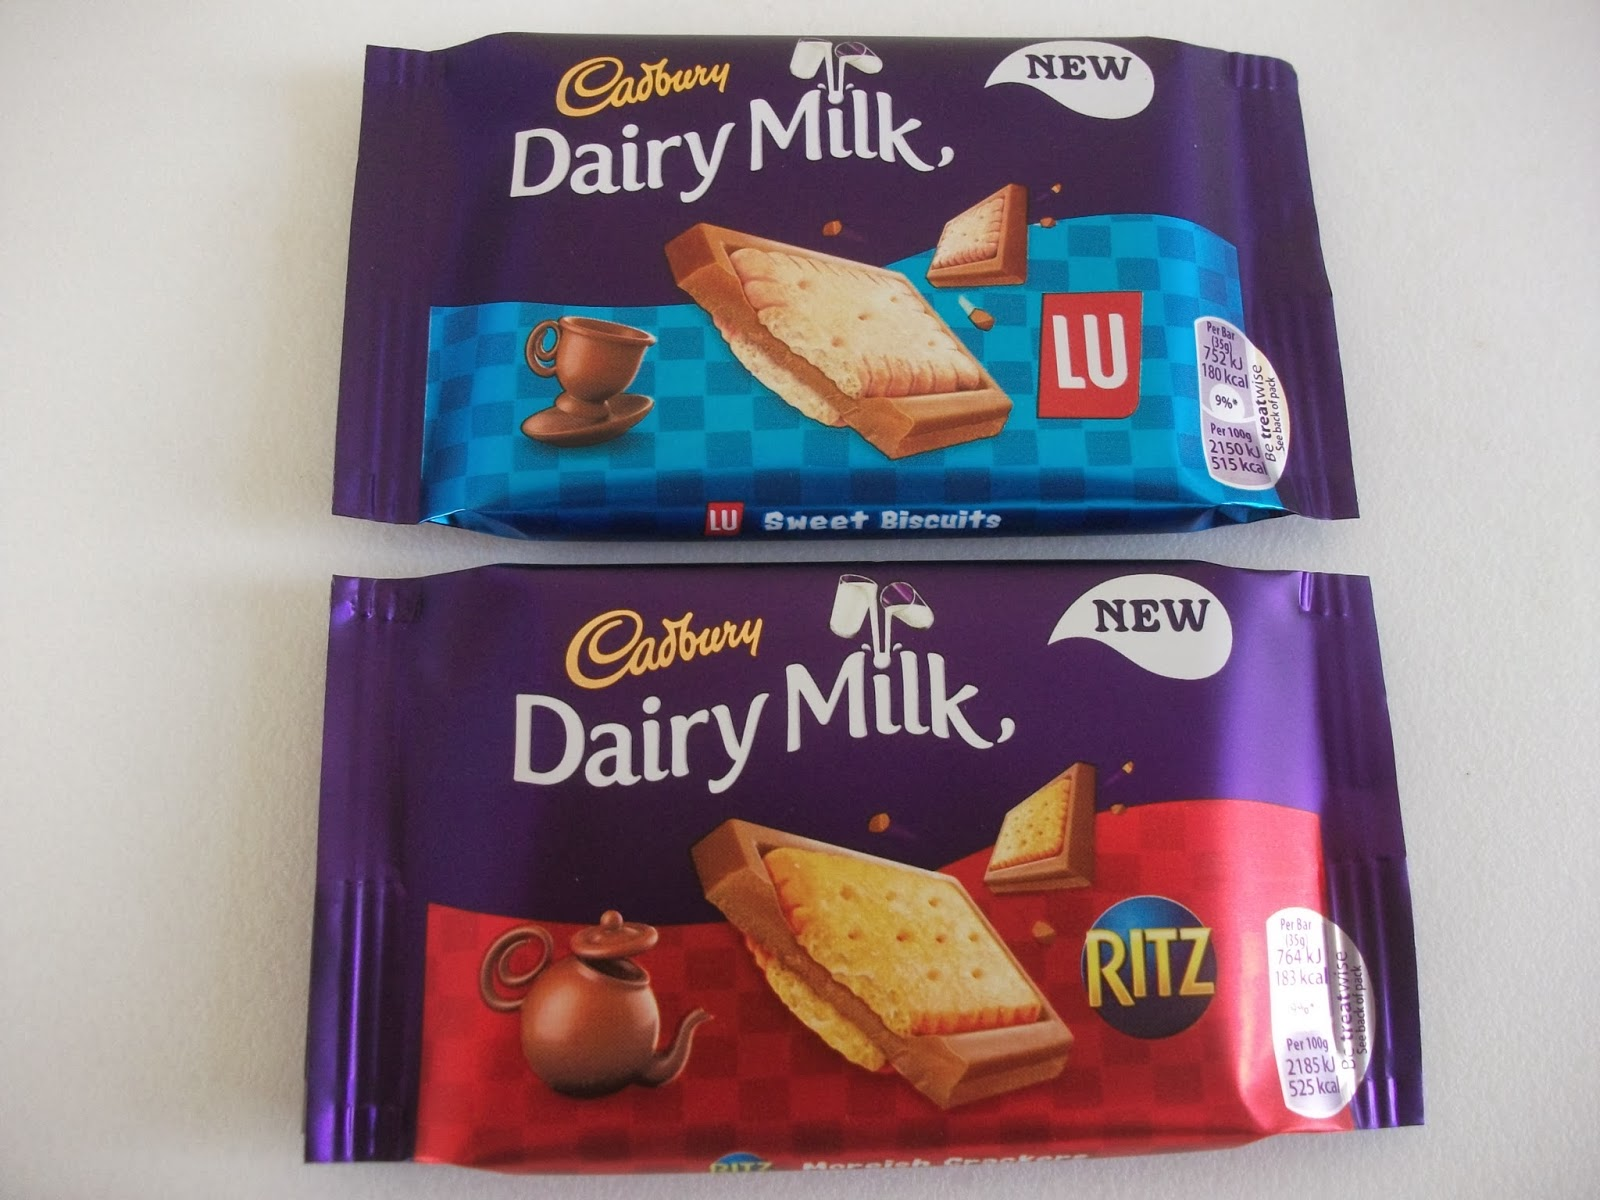 cadbury dairy milk with ritz crackers and lu sweet biscuits